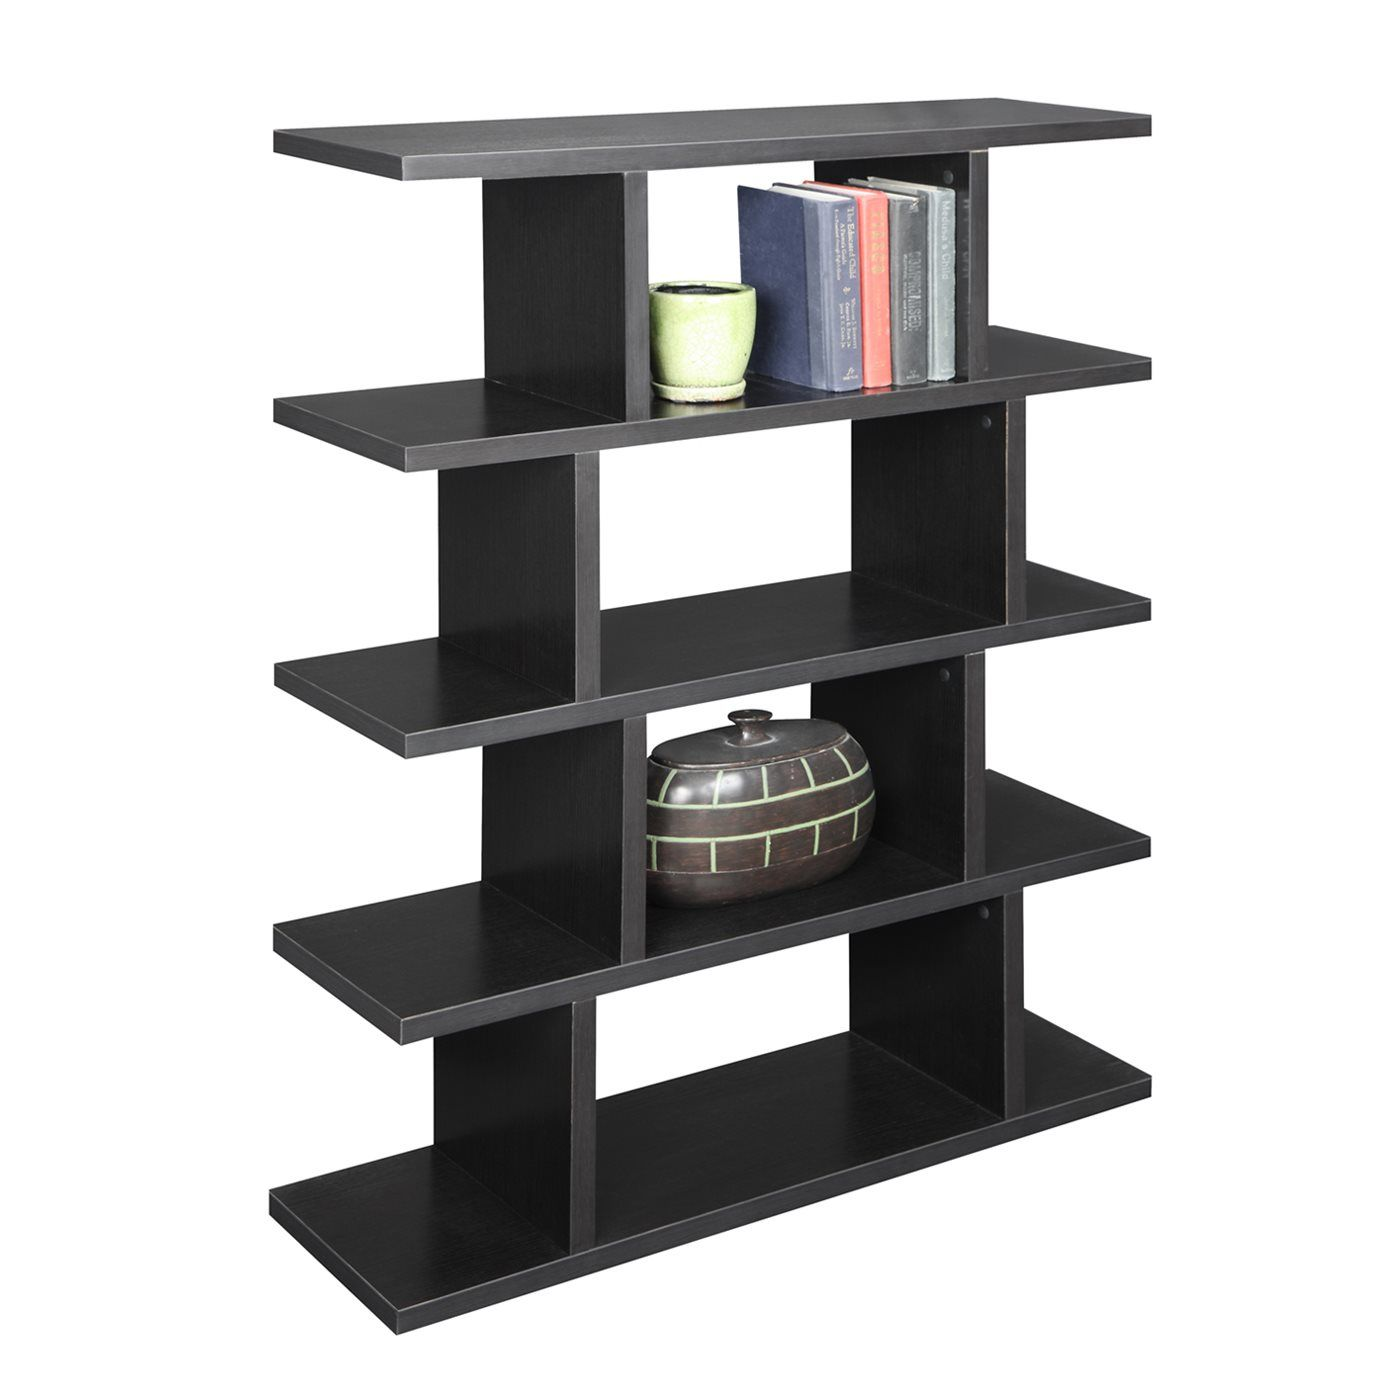 Convenience Concepts 121015 Northfield Block Bookshelf at